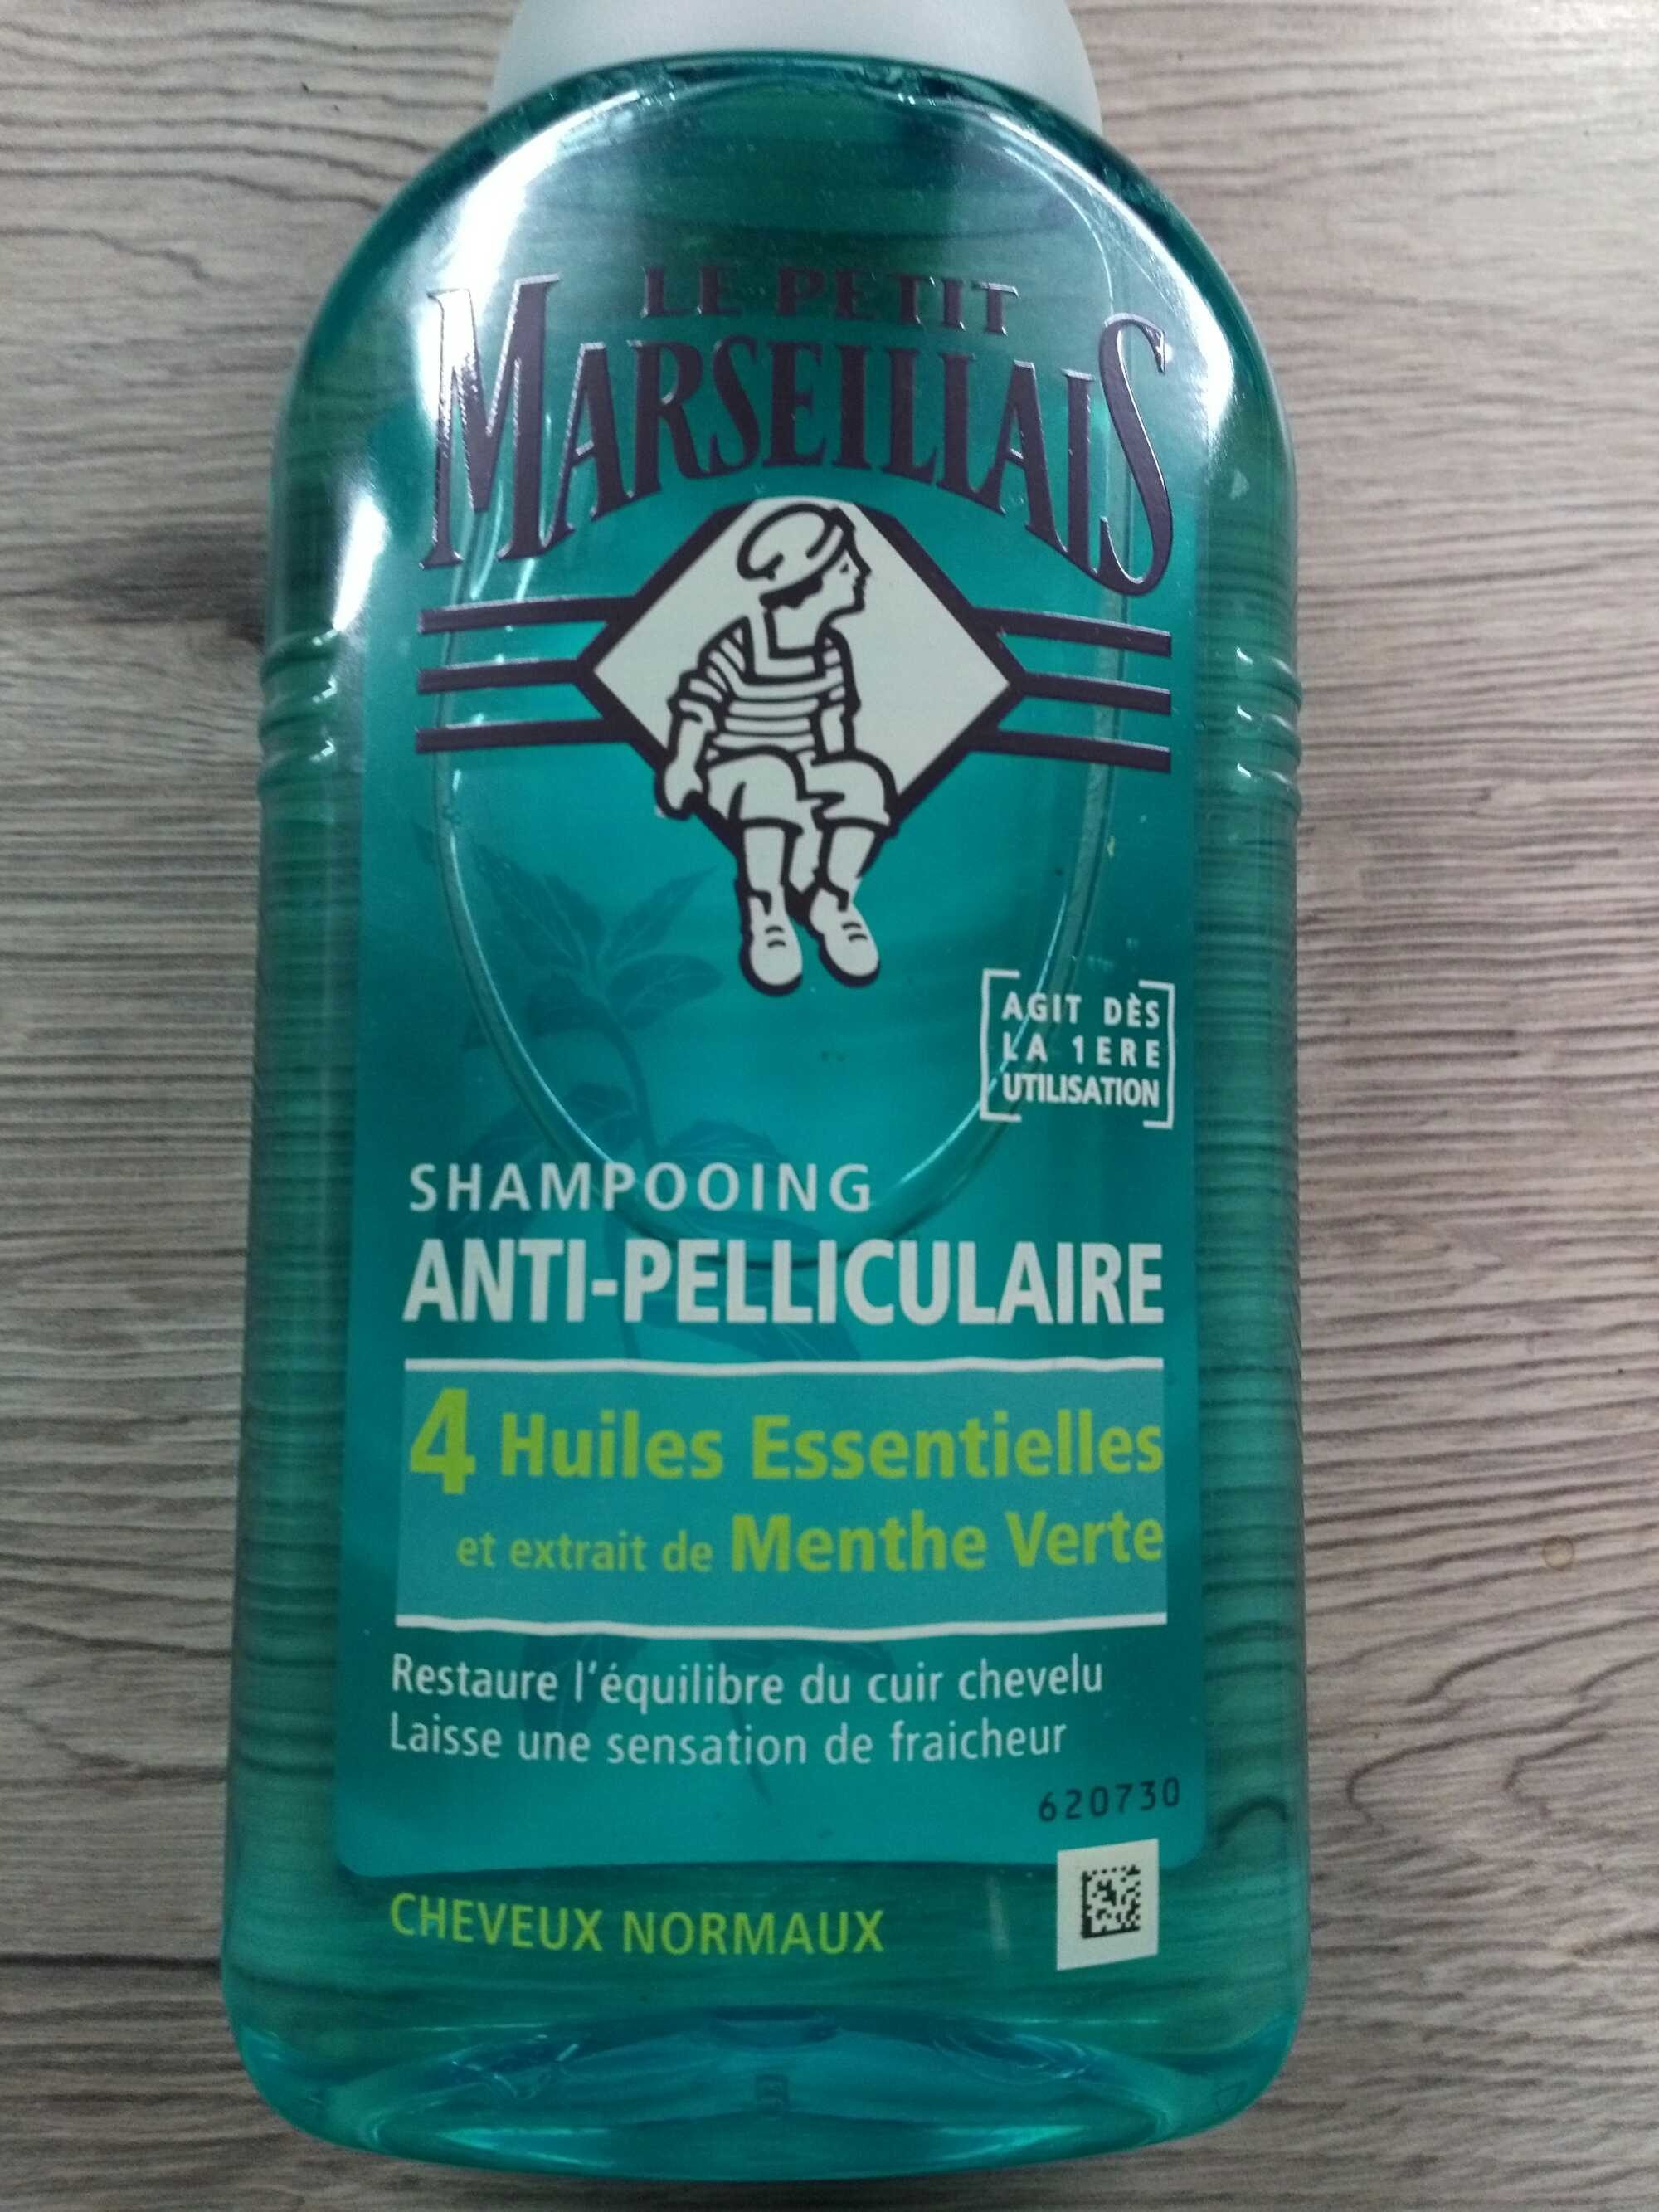 Shampooing anti-pelliculaire - Product - fr